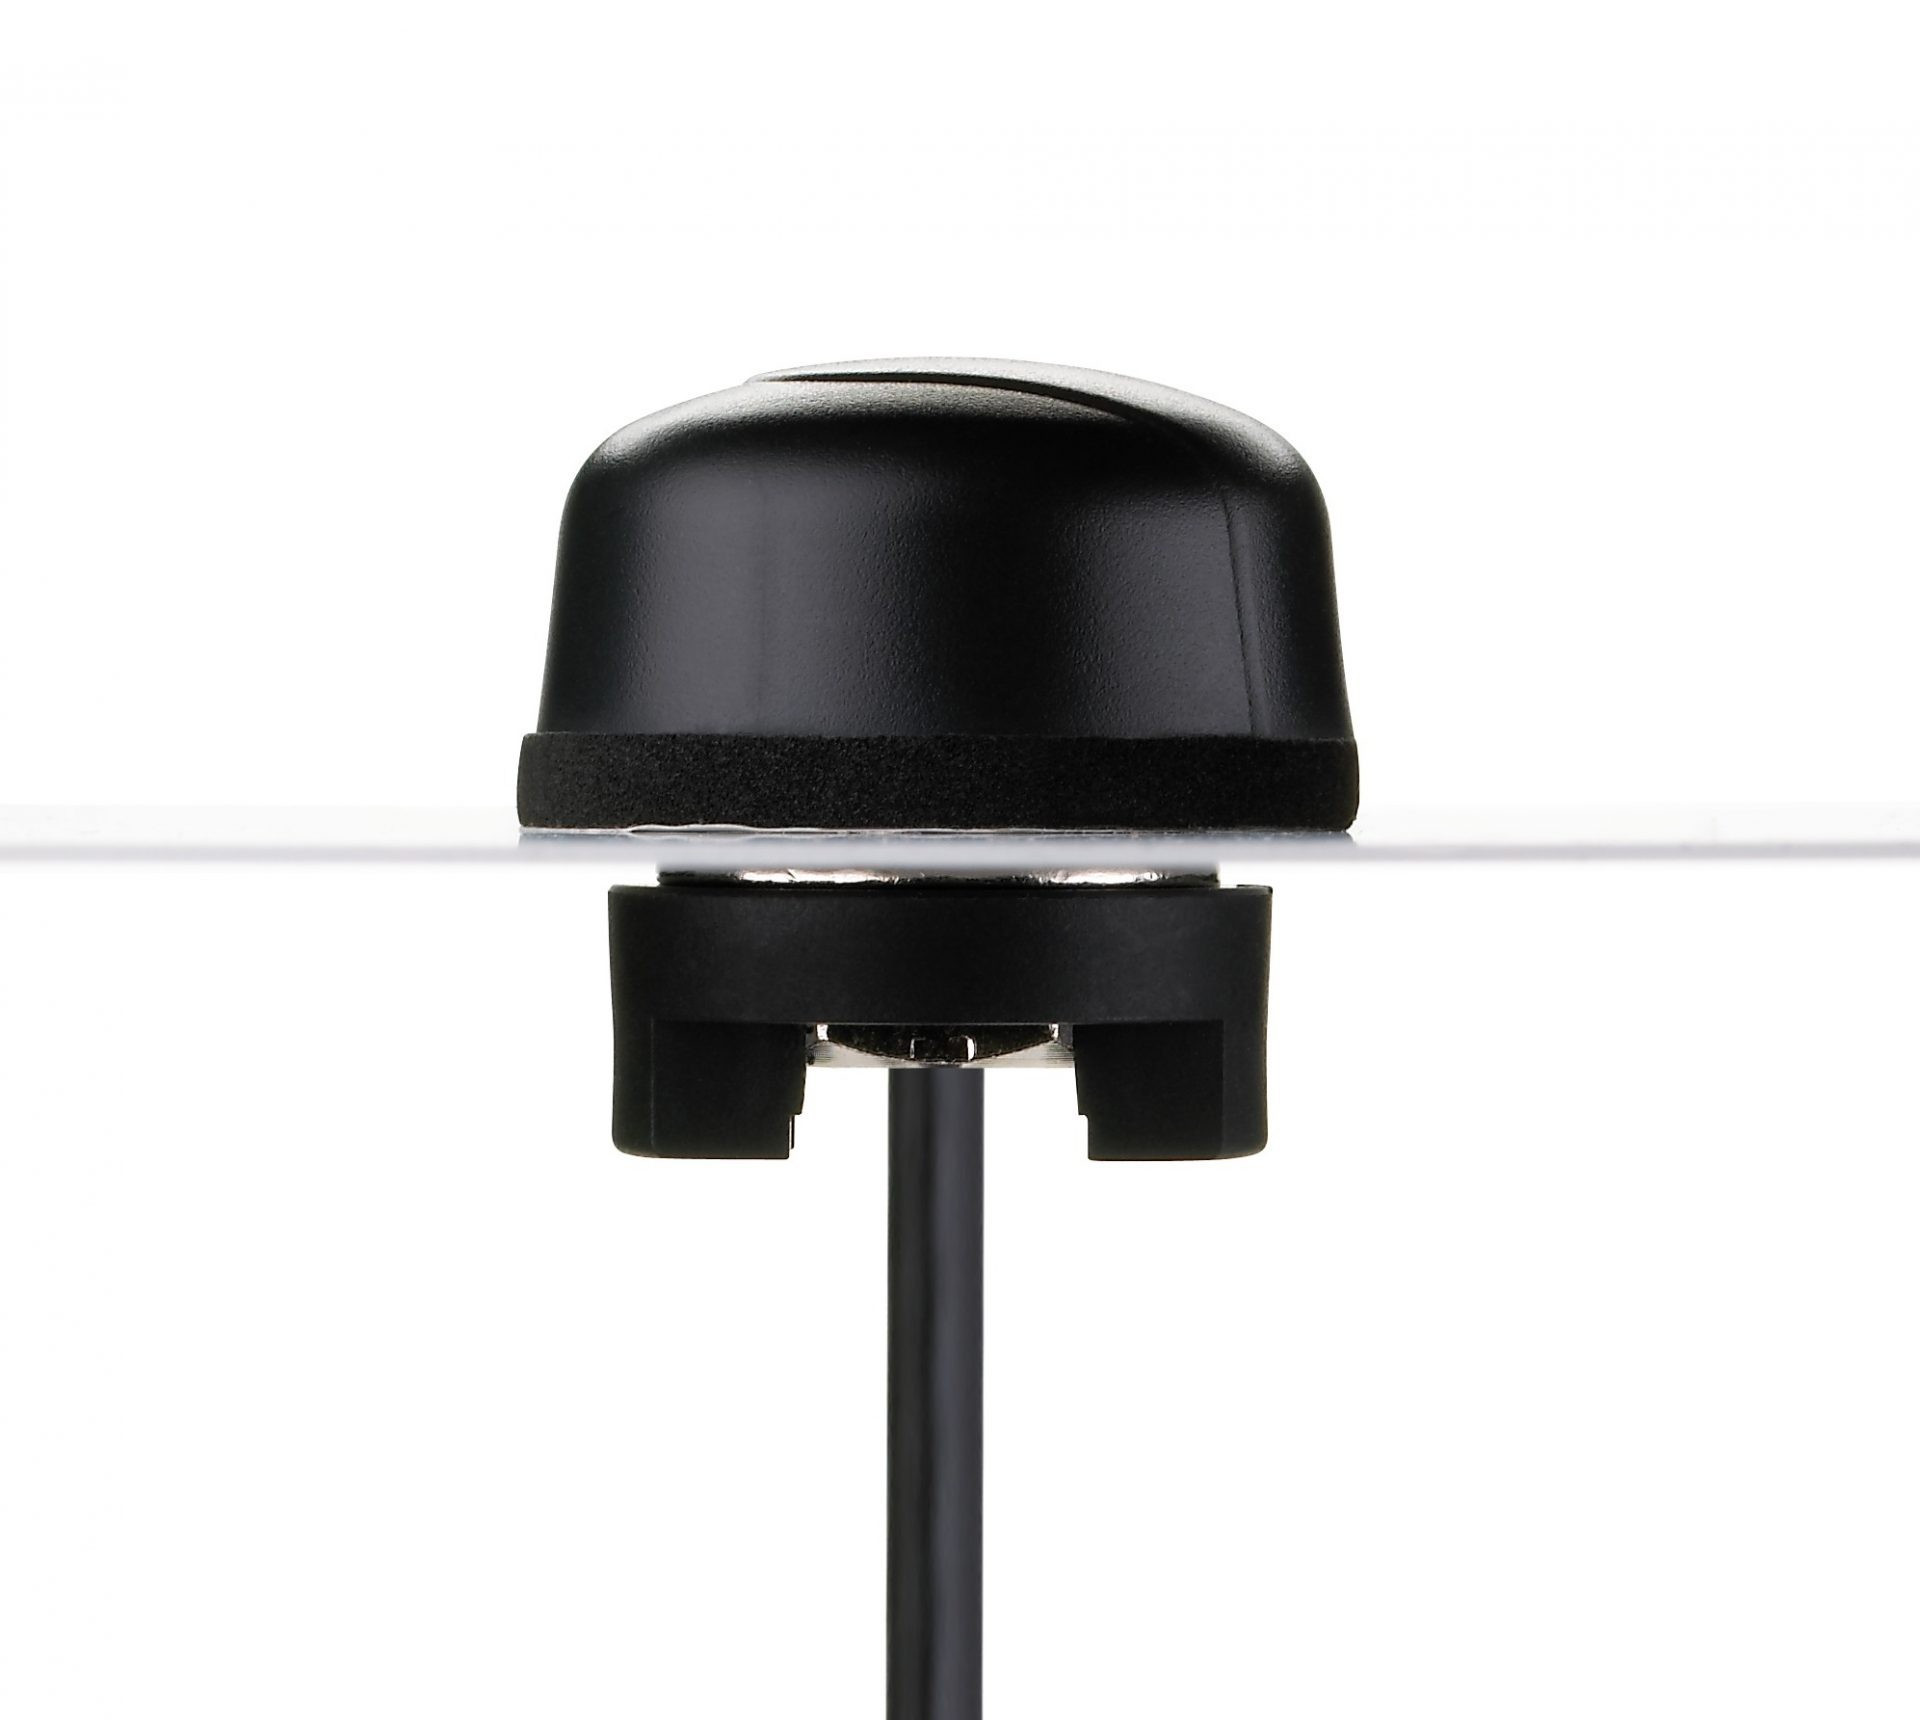 GPS Permanent Mount Antennas